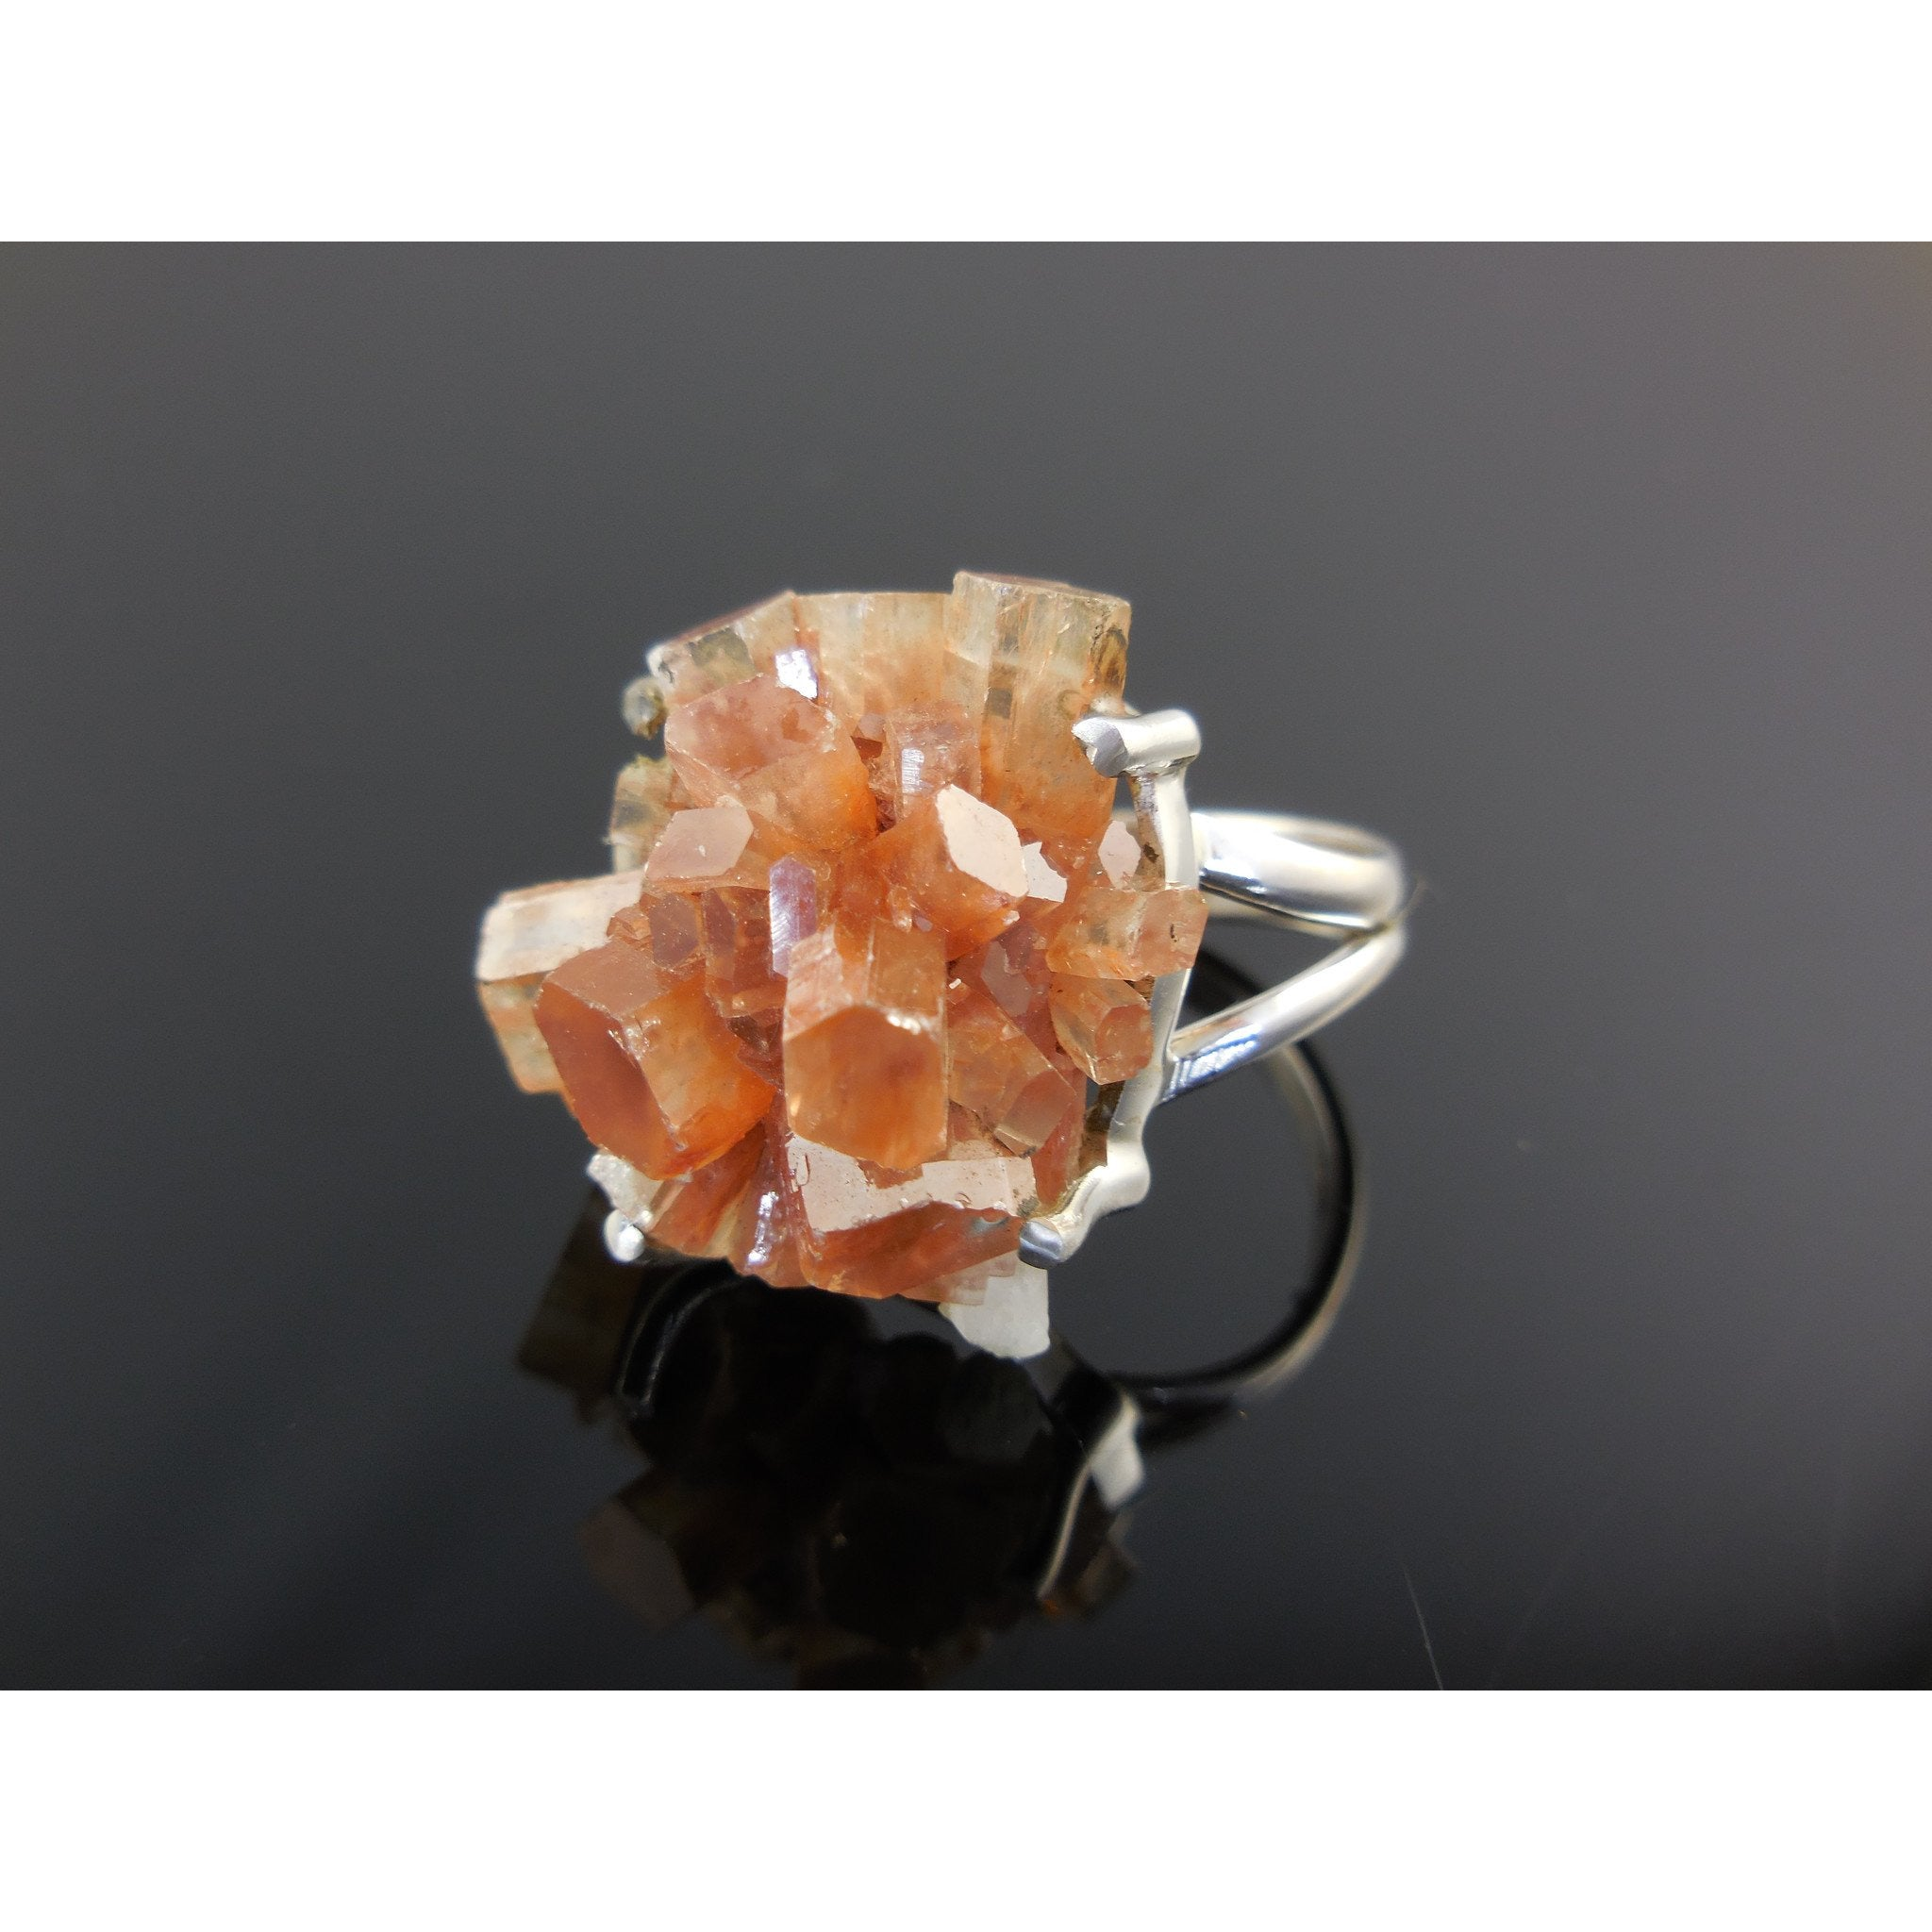 Aragonite Crystal Cluster Sterling Silver Ring - Size 5.5